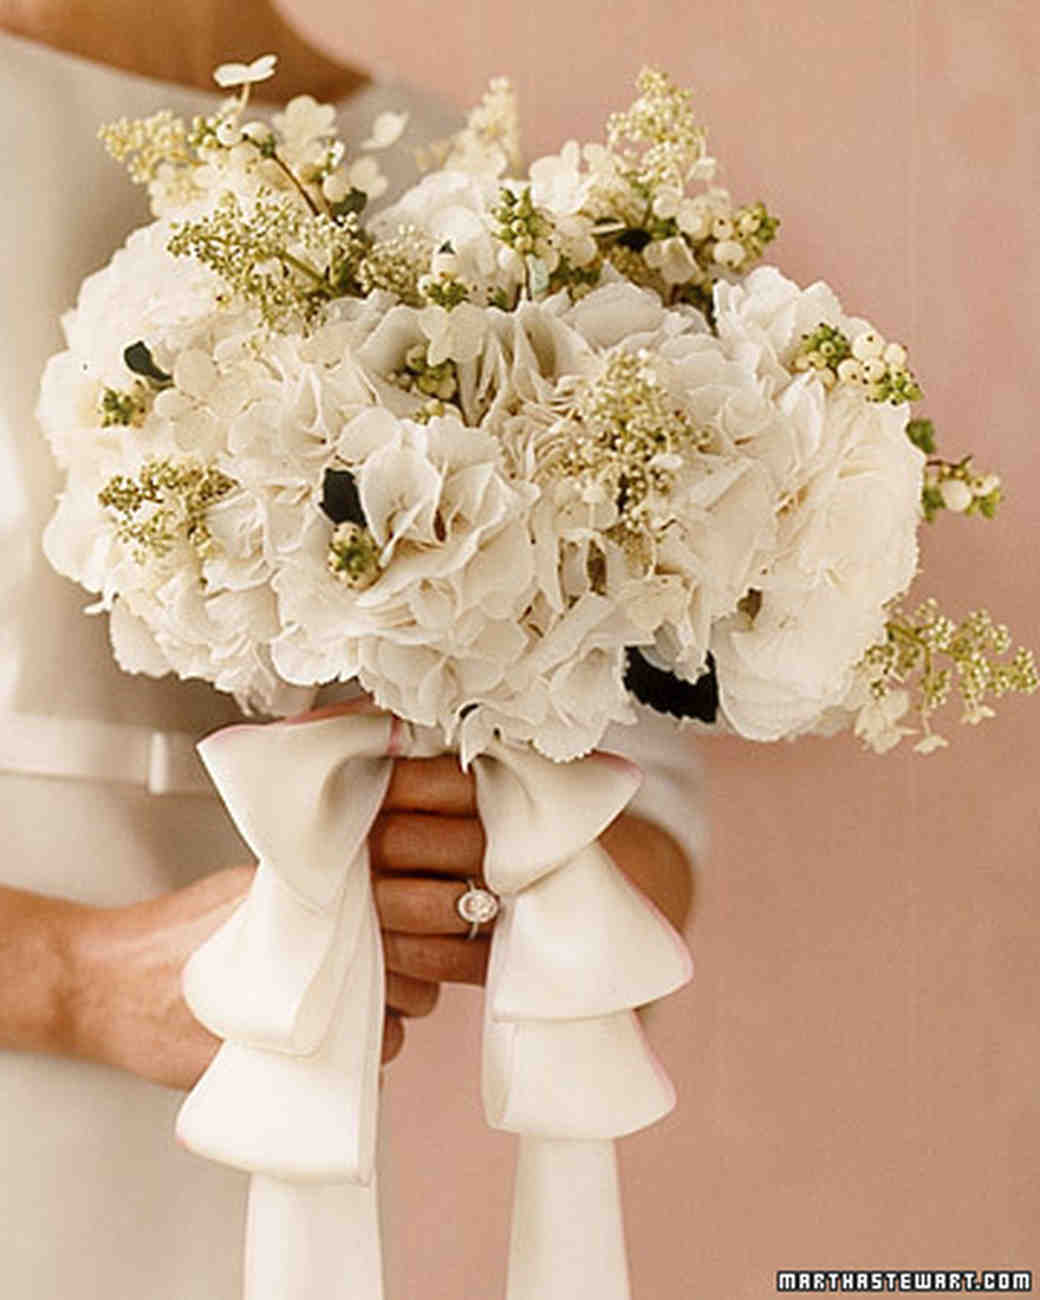 hydrangea wedding flowers photo - 1